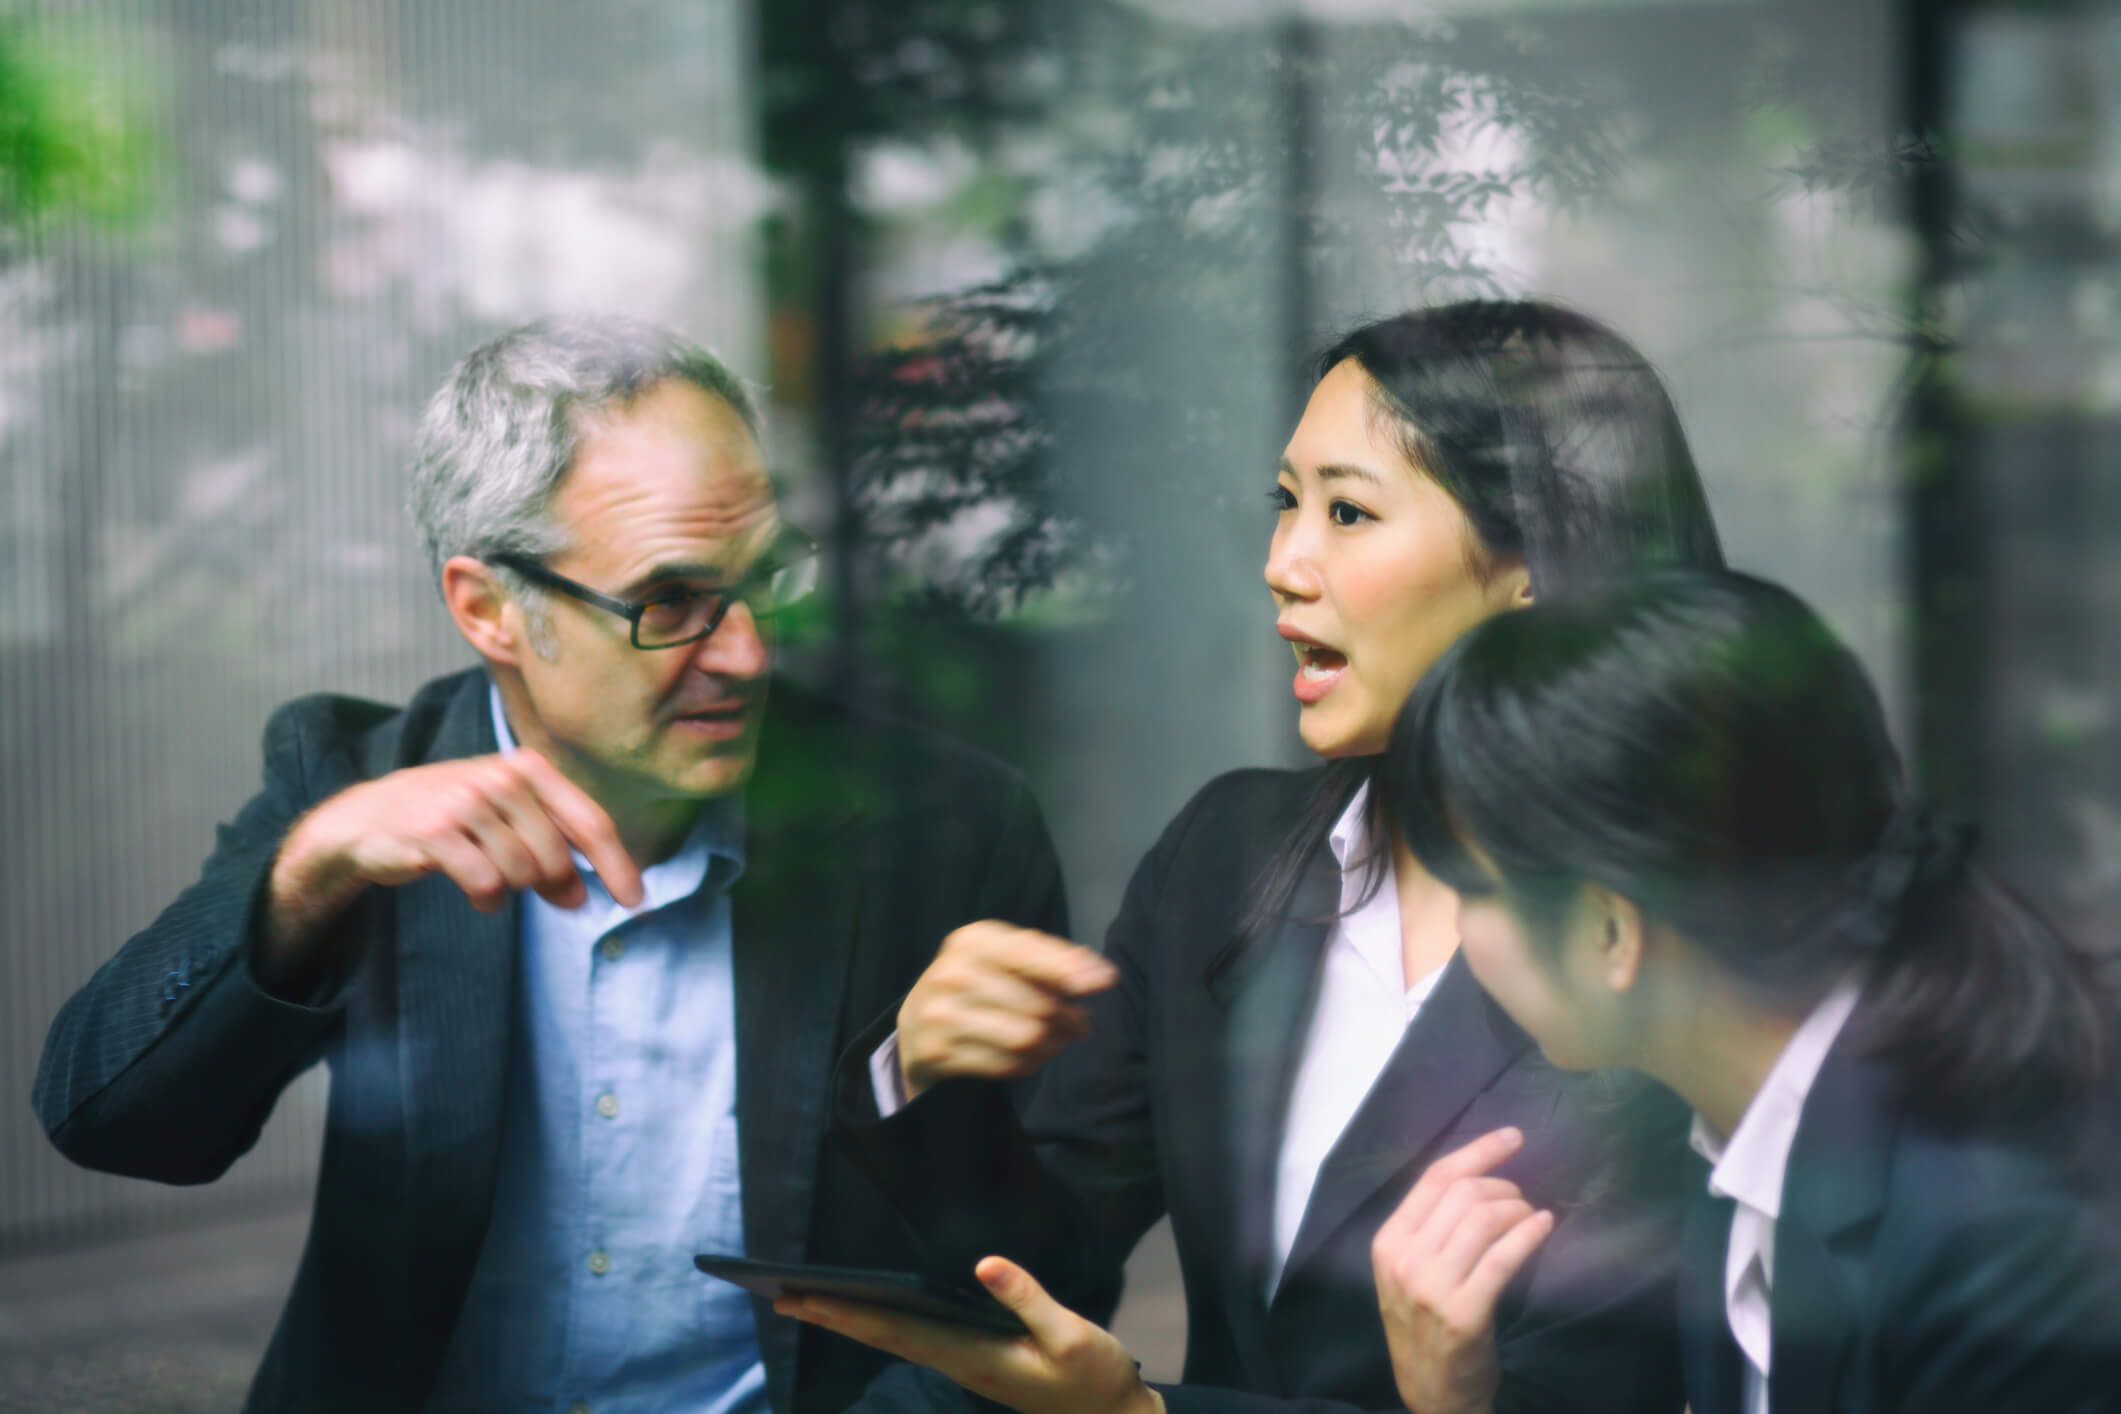 BUILDING A HYBRID CULTURE – AMERICANS AND JAPANESE WORKING TOGETHER